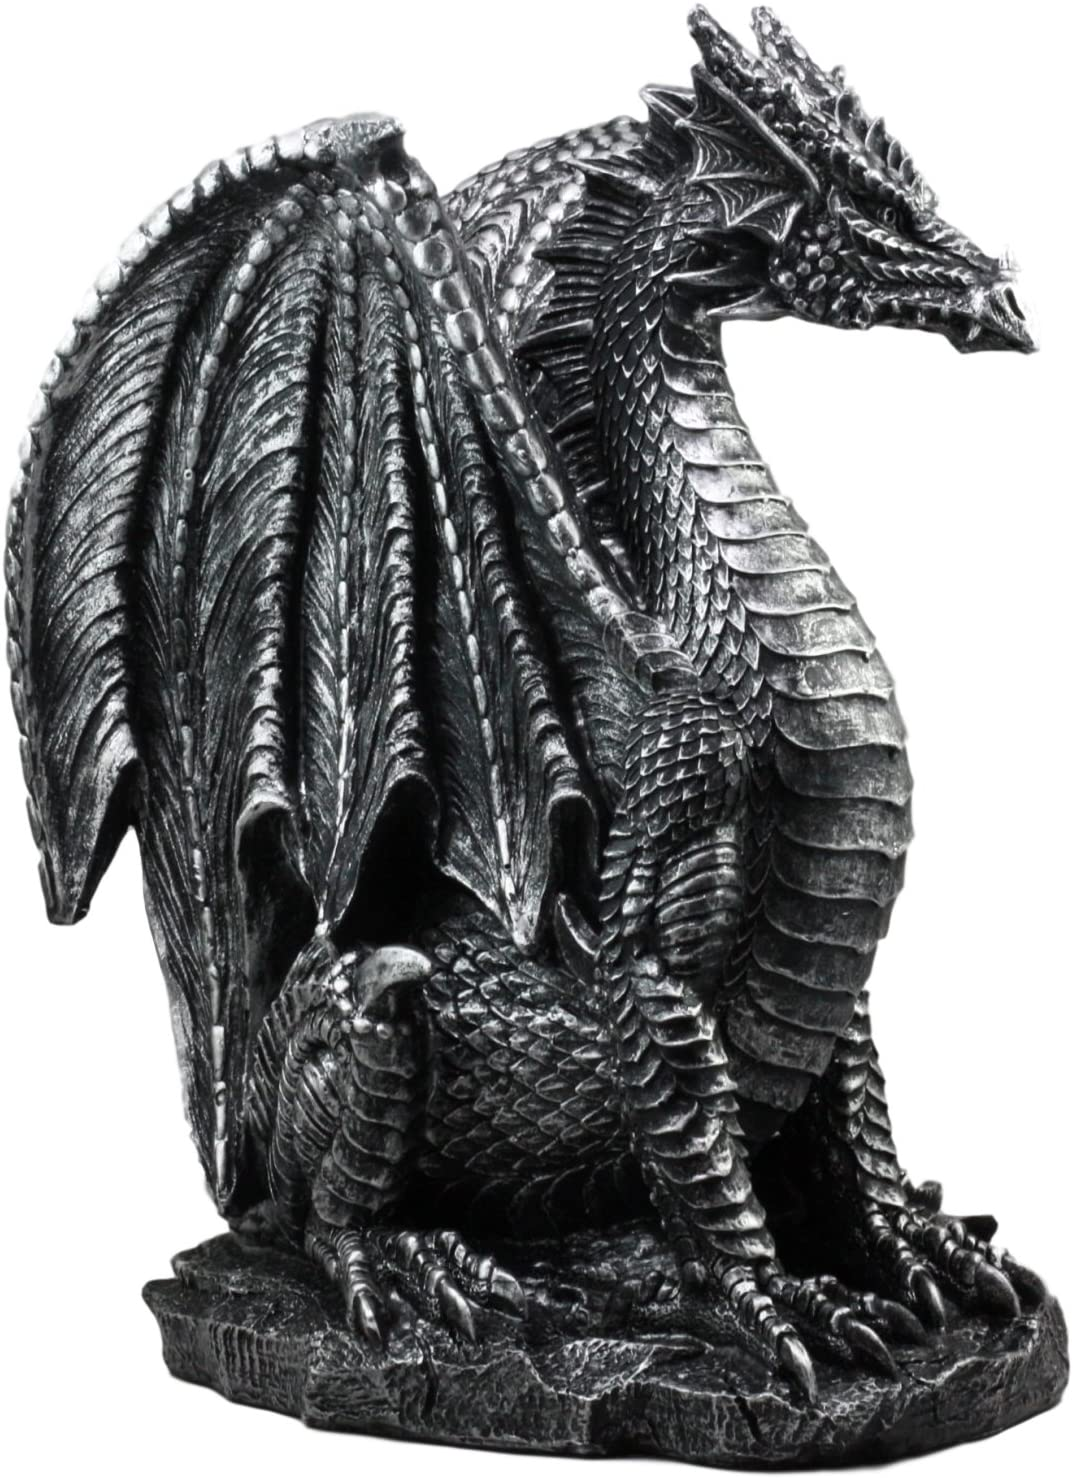 Sentry Dragon Sculpture